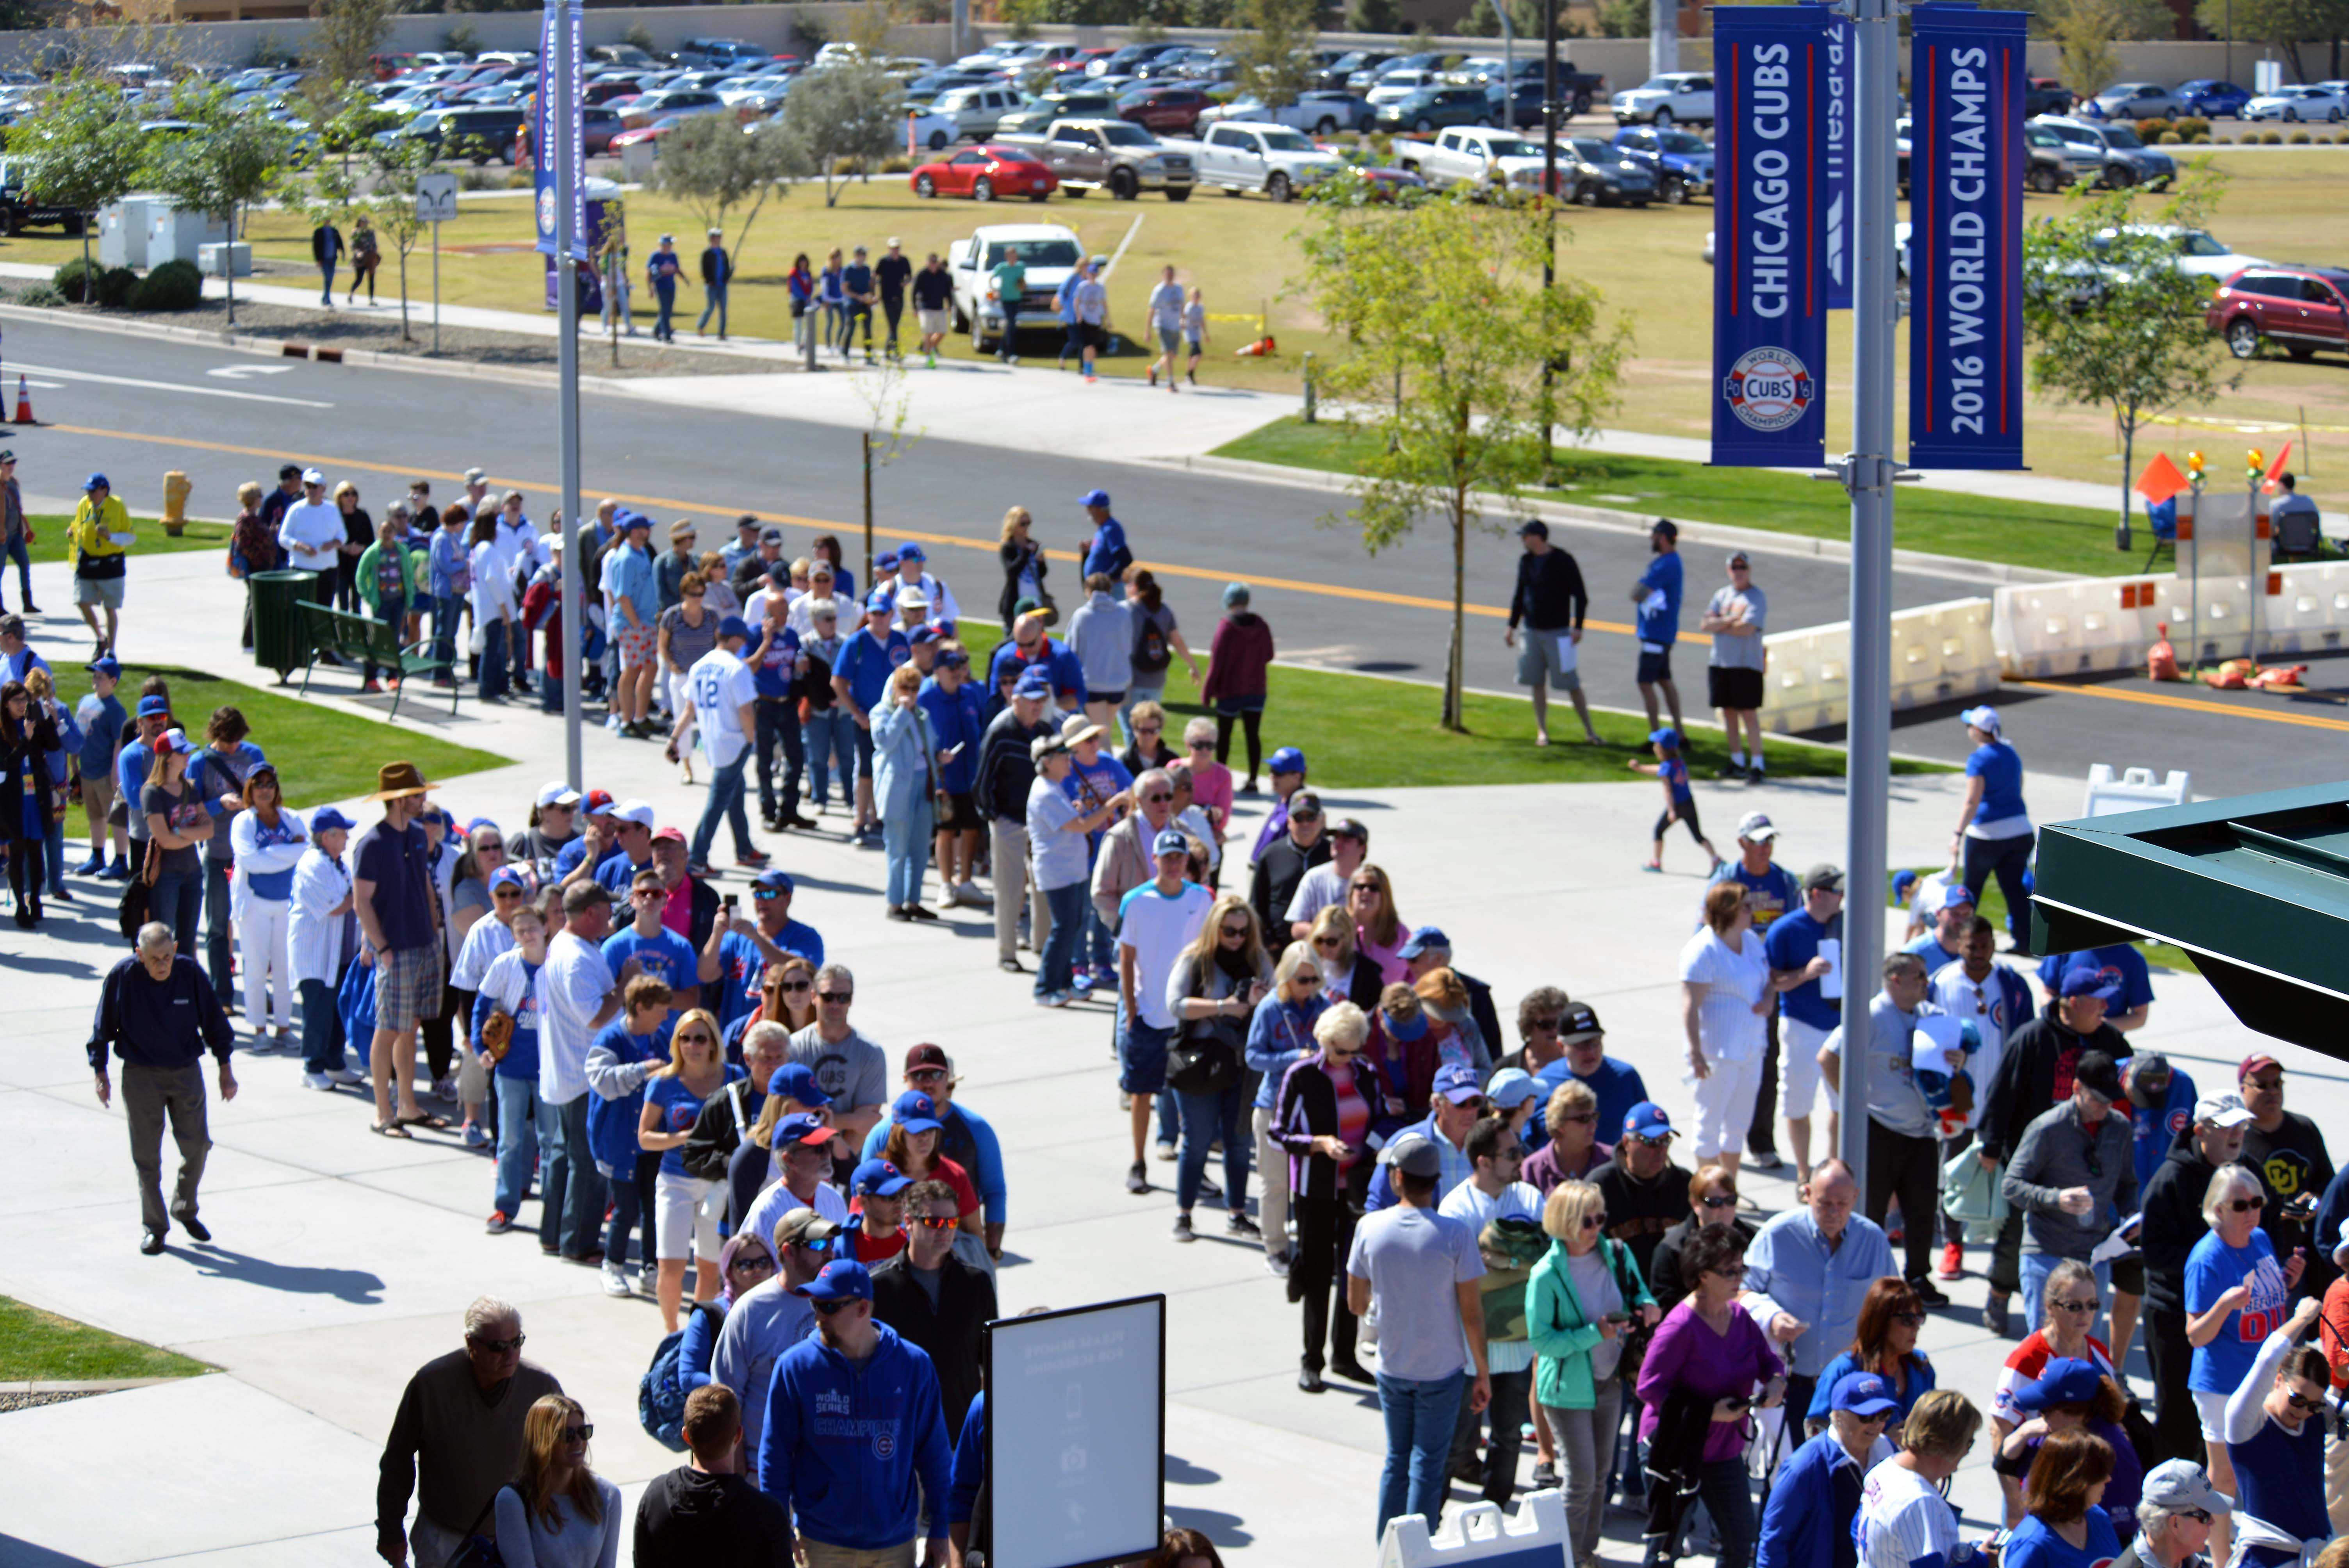 Bruce Miles/bmiles@dailyherald.comFans entering Sloan Park on opening day for the Cactus League.